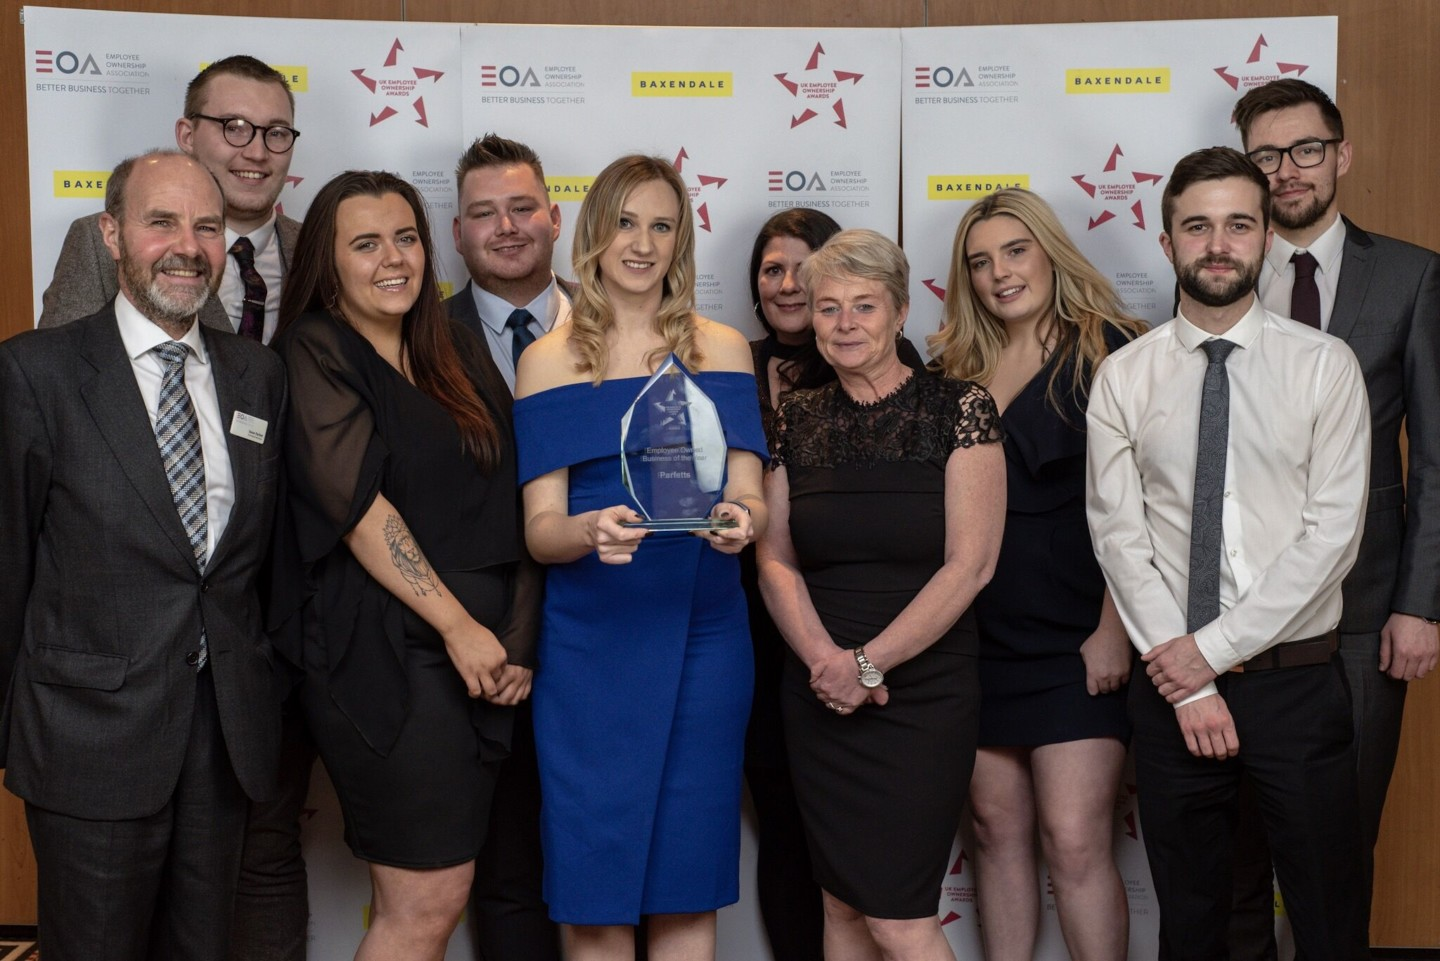 Employee Owned Business 2018 Winner